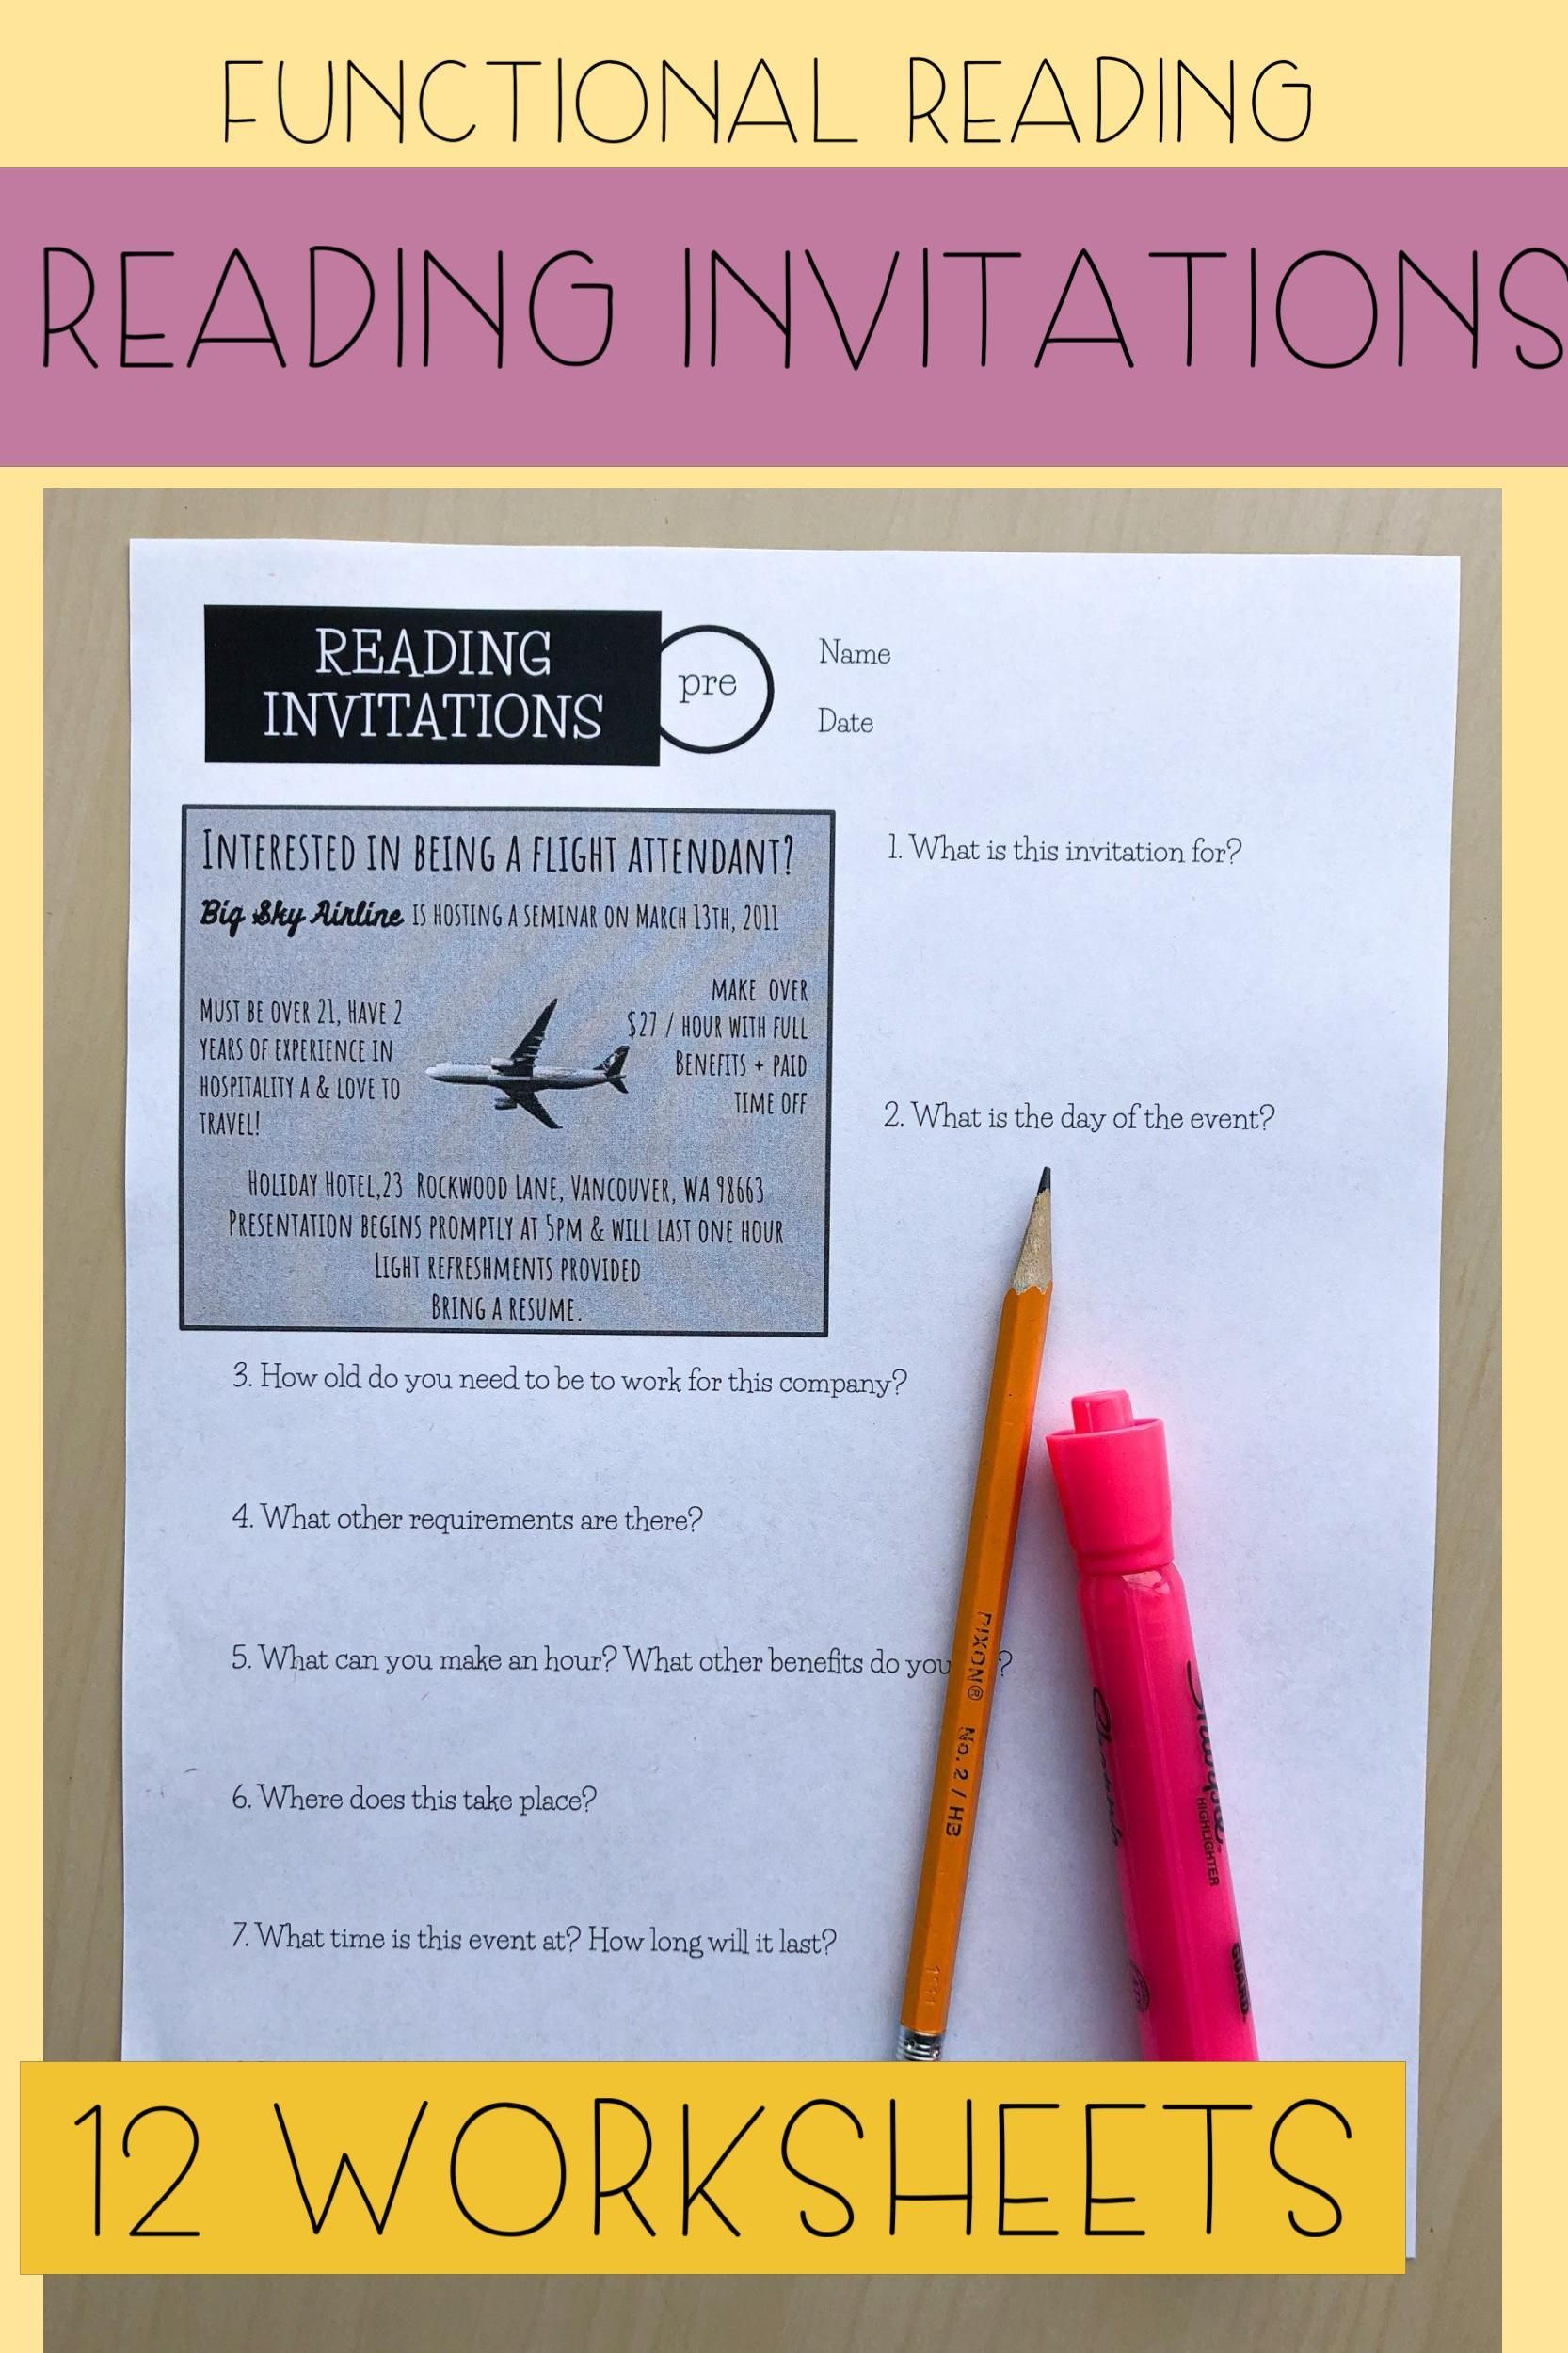 Reading Invitations Worksheets In